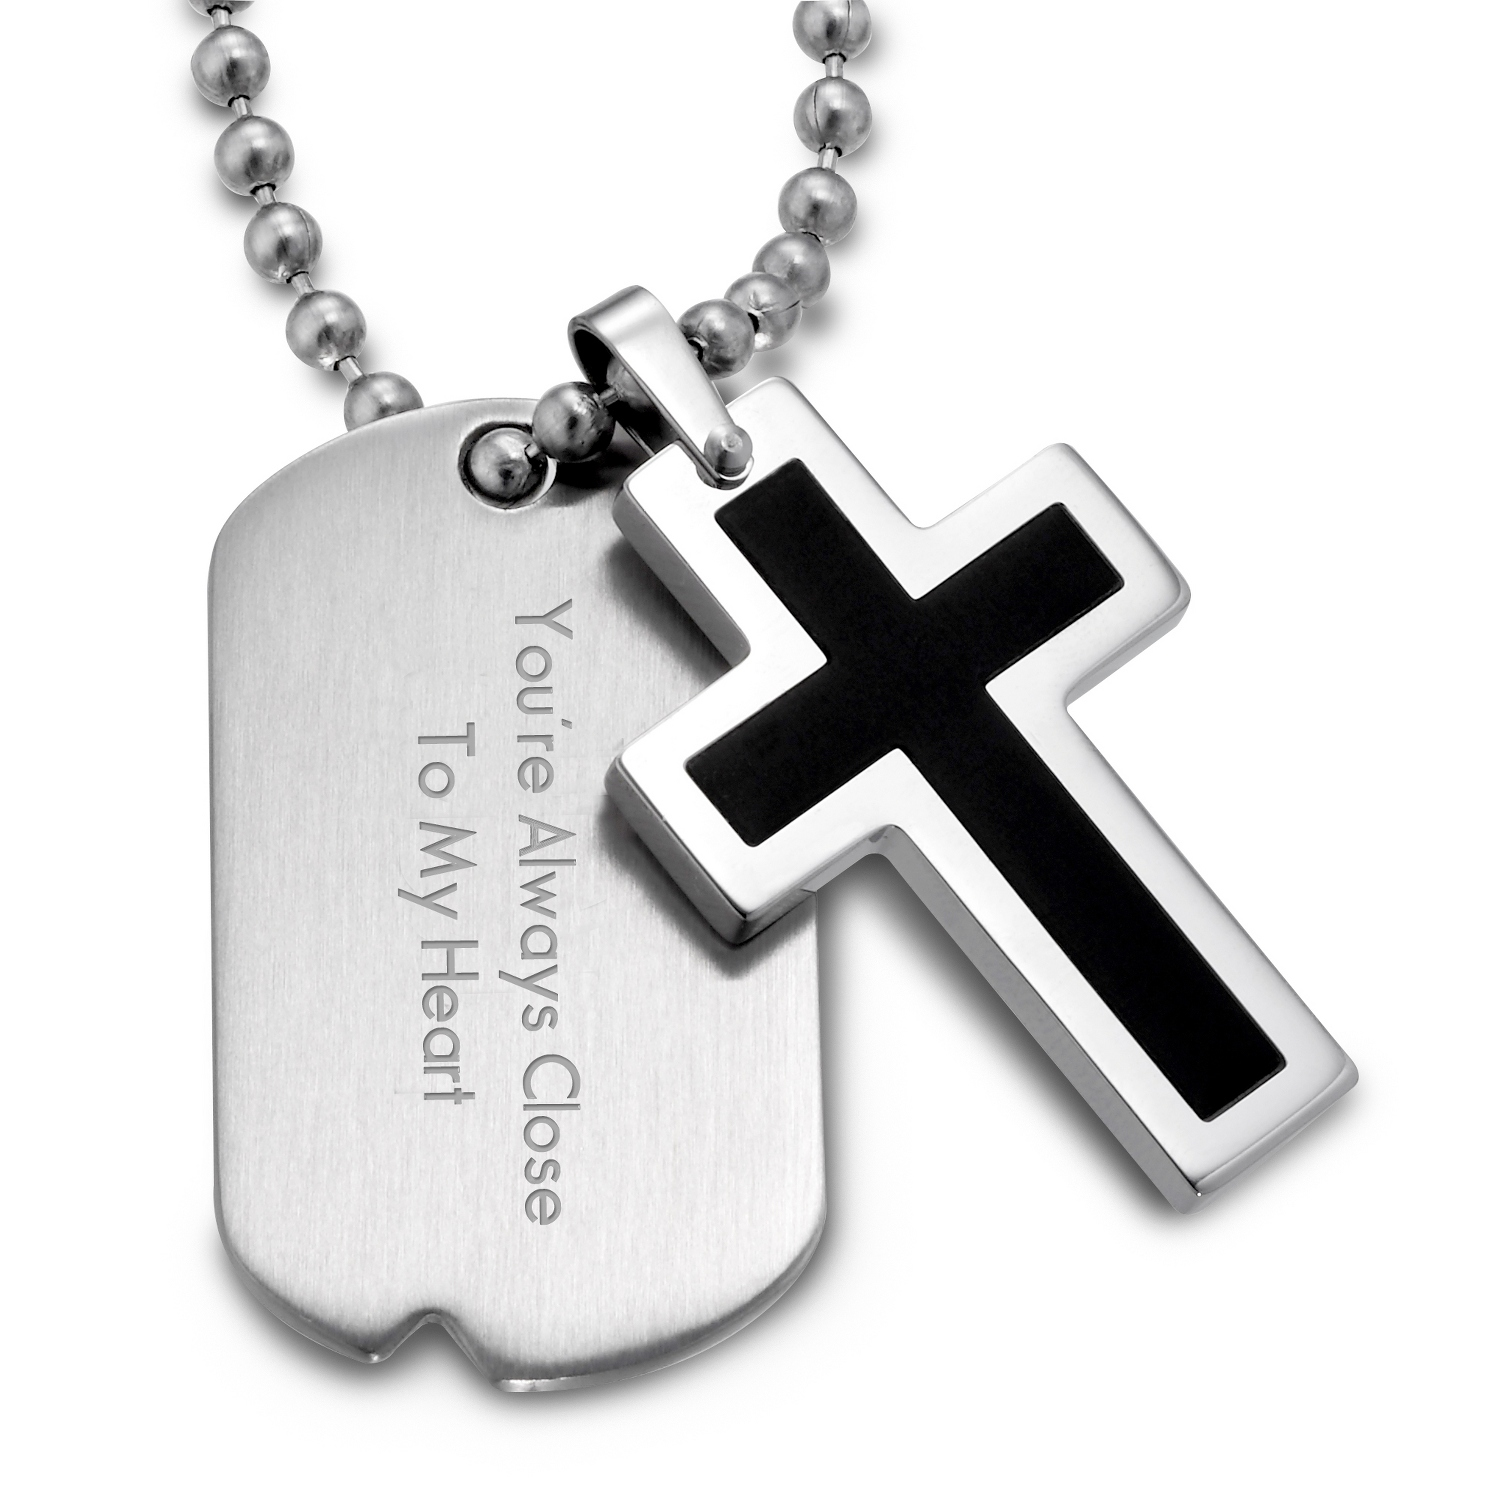 rack pendant nordstrom serenity of prayer tag image dog shop necklace product